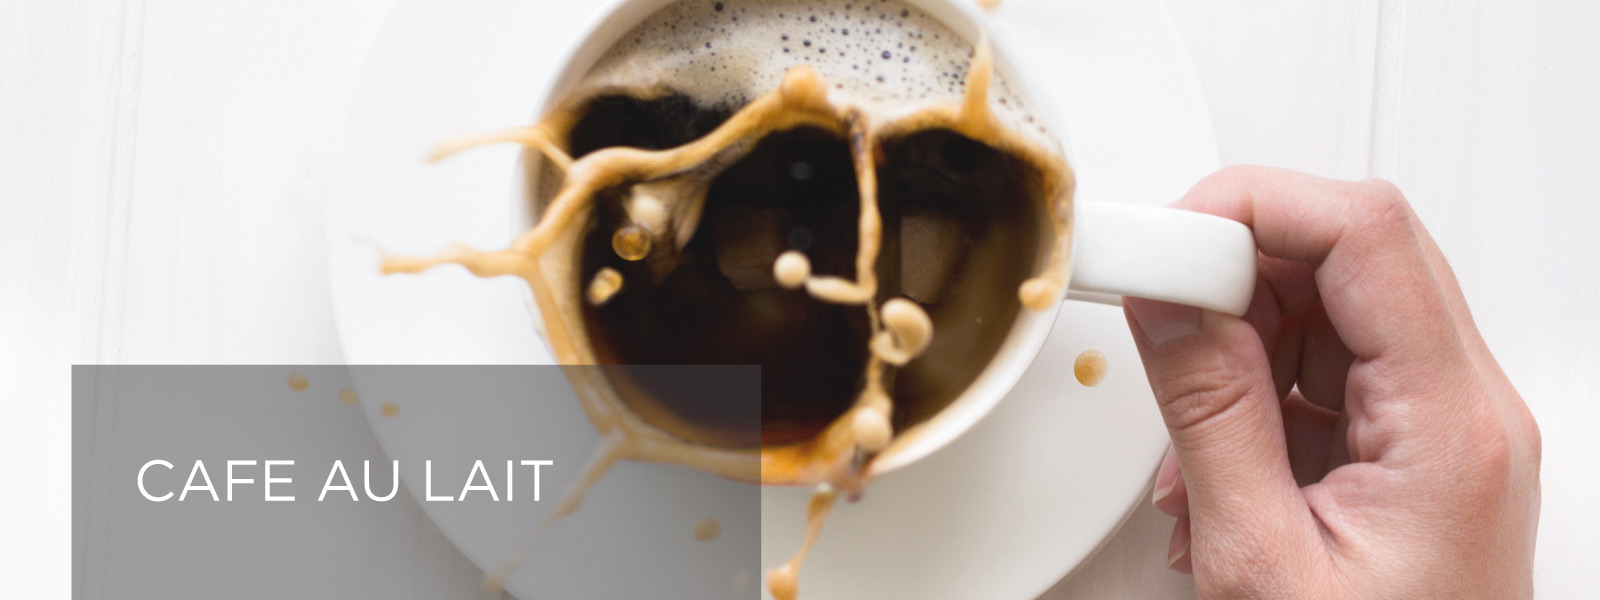 Cafe-au-Lait Recipe Banner